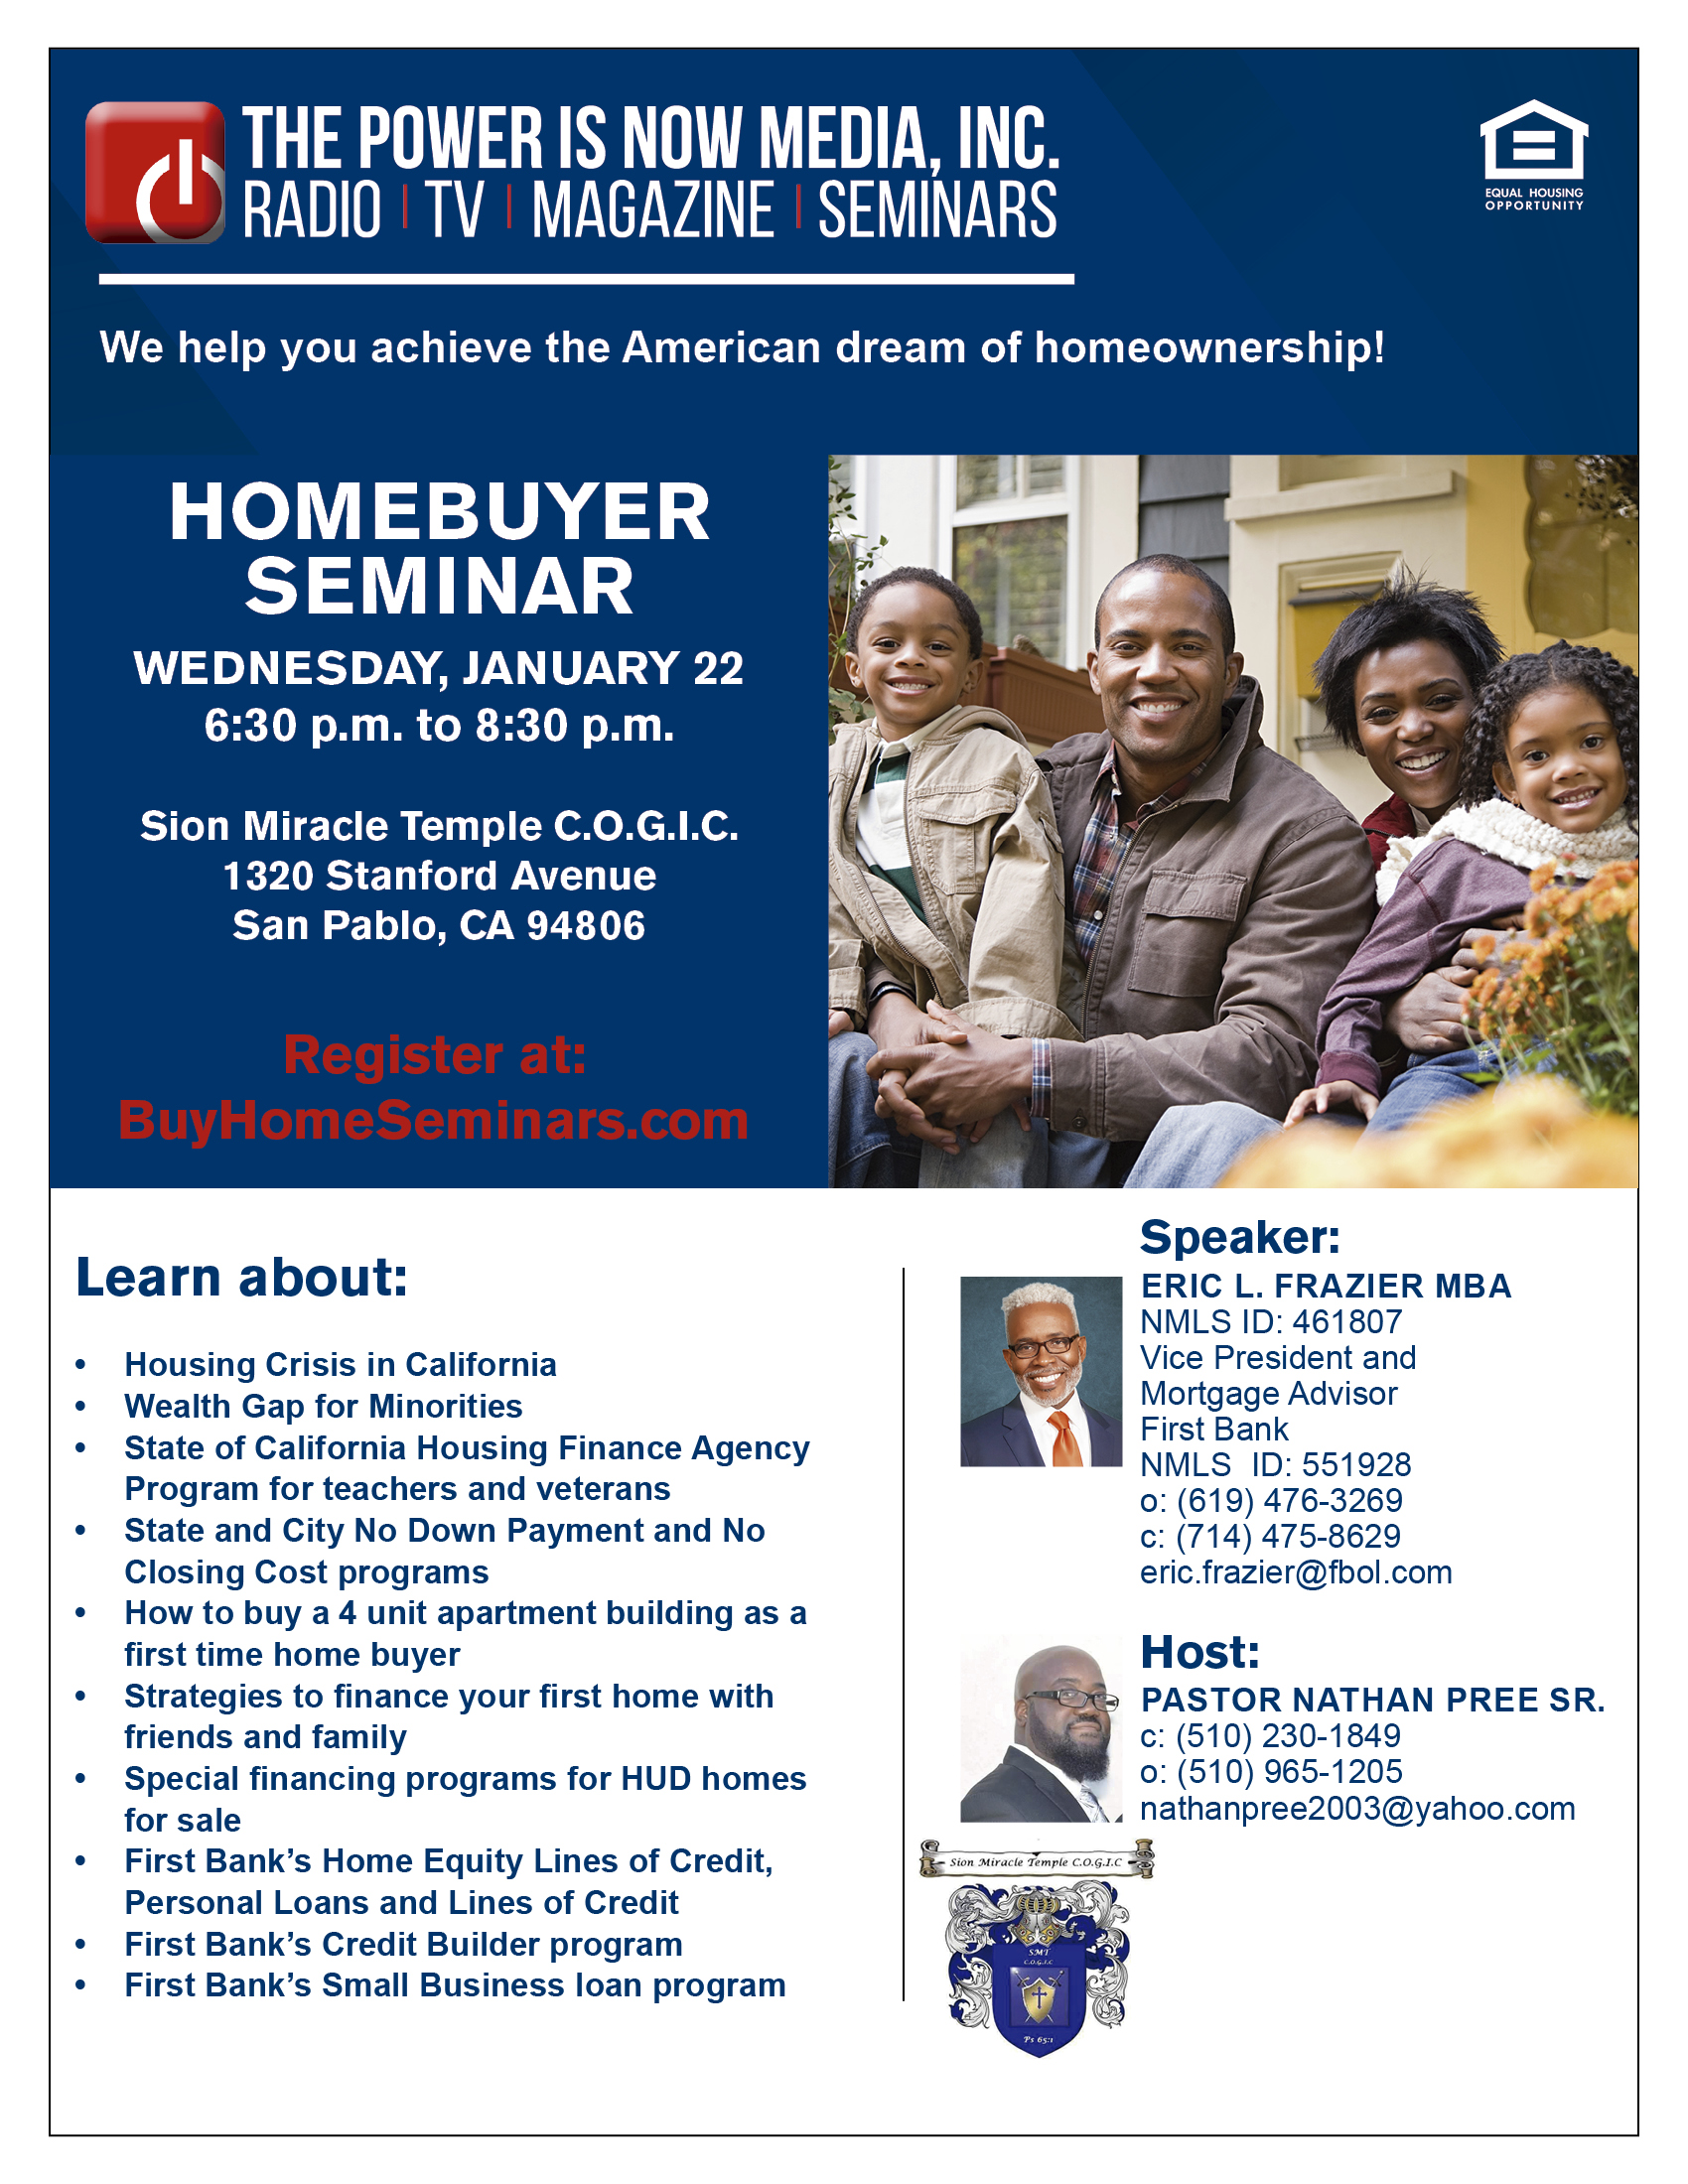 Homebuyer Seminar – Sion Miracle Temple